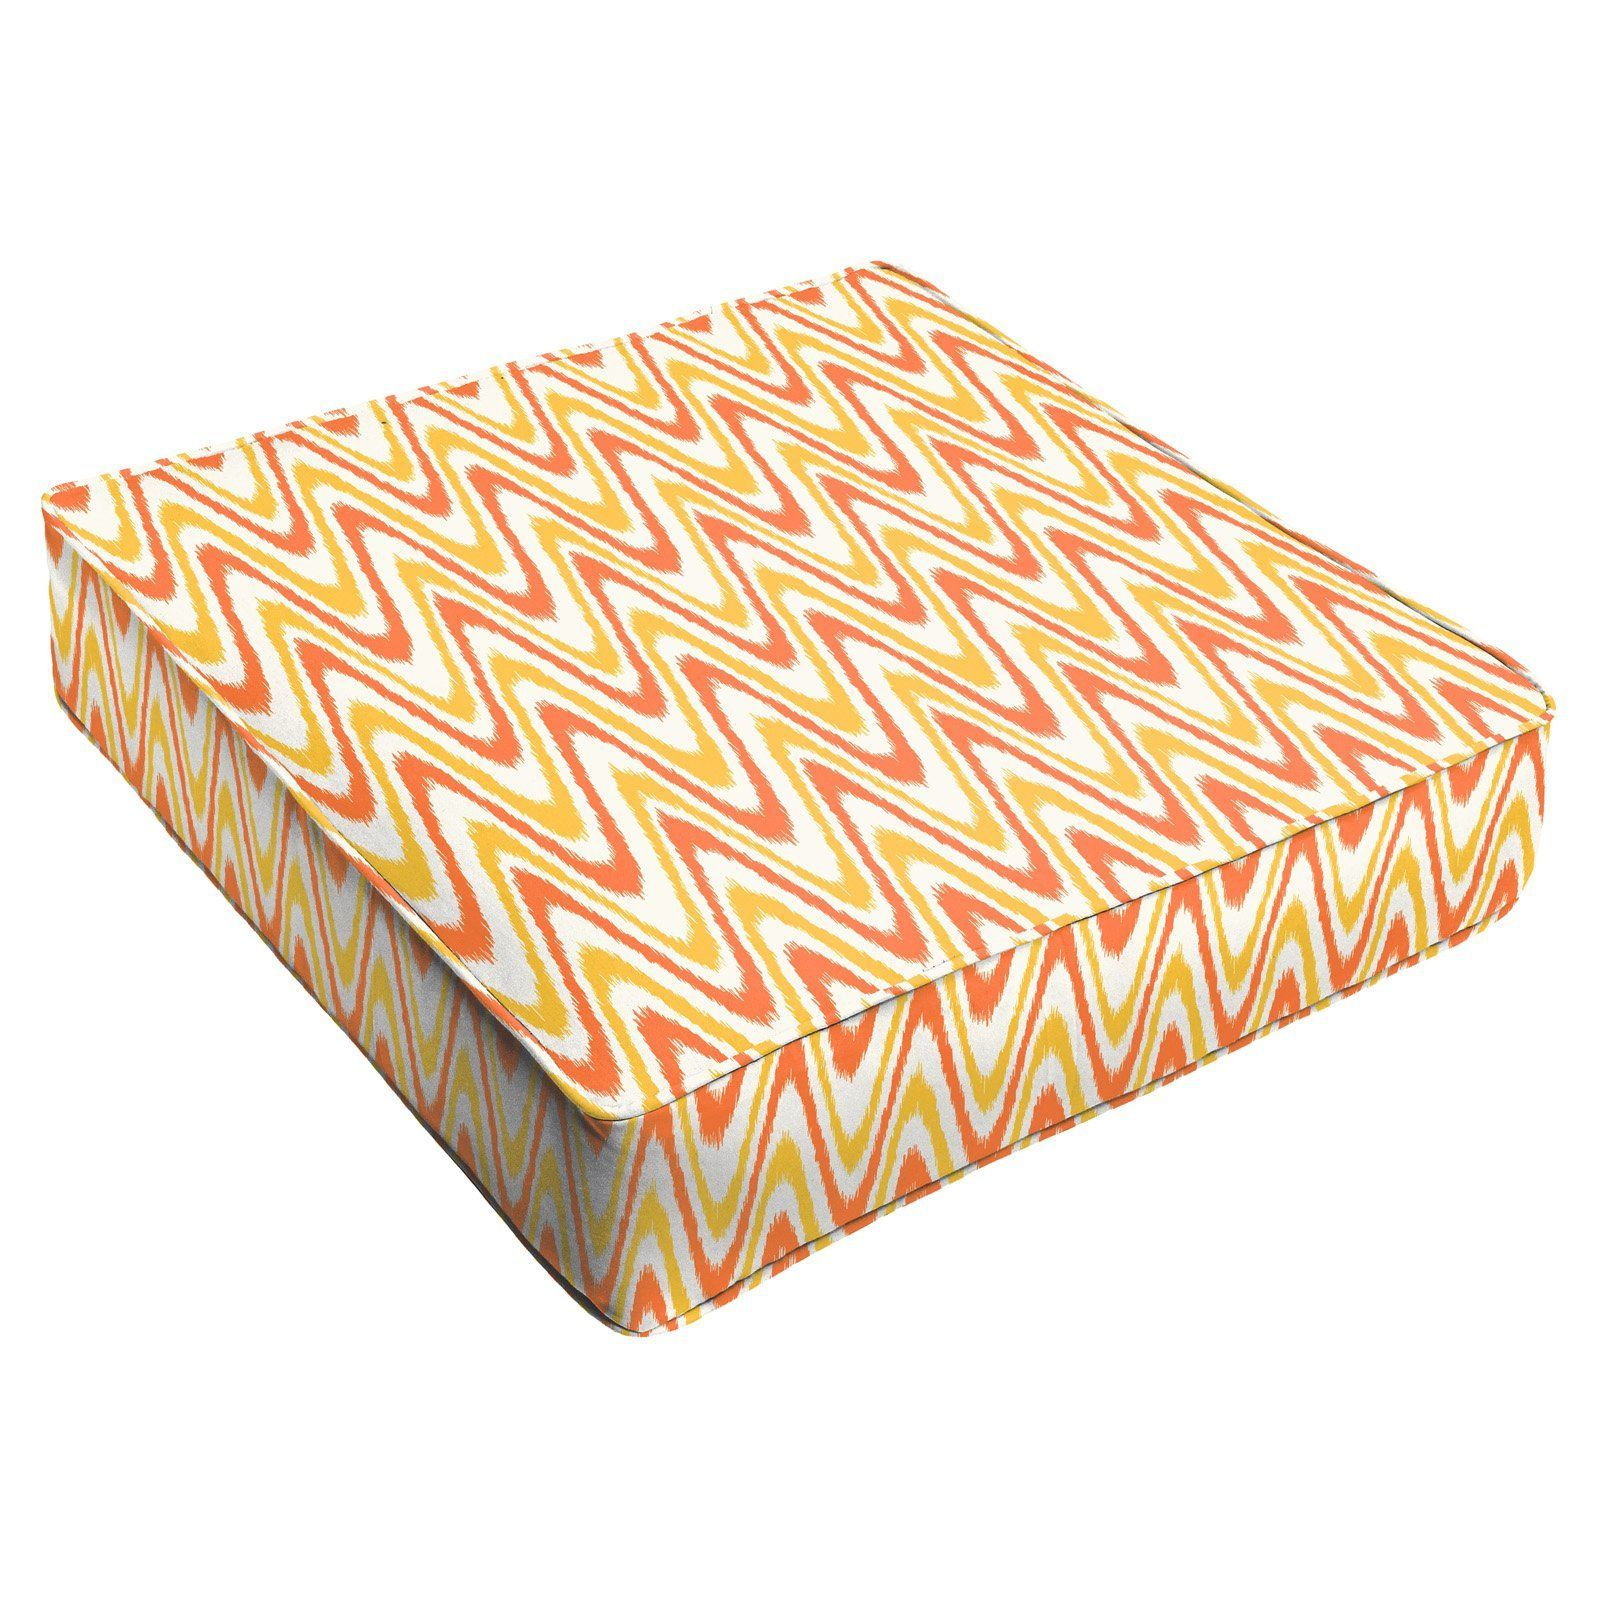 Mozaic company jiggly outdoor corded square cushion hncs